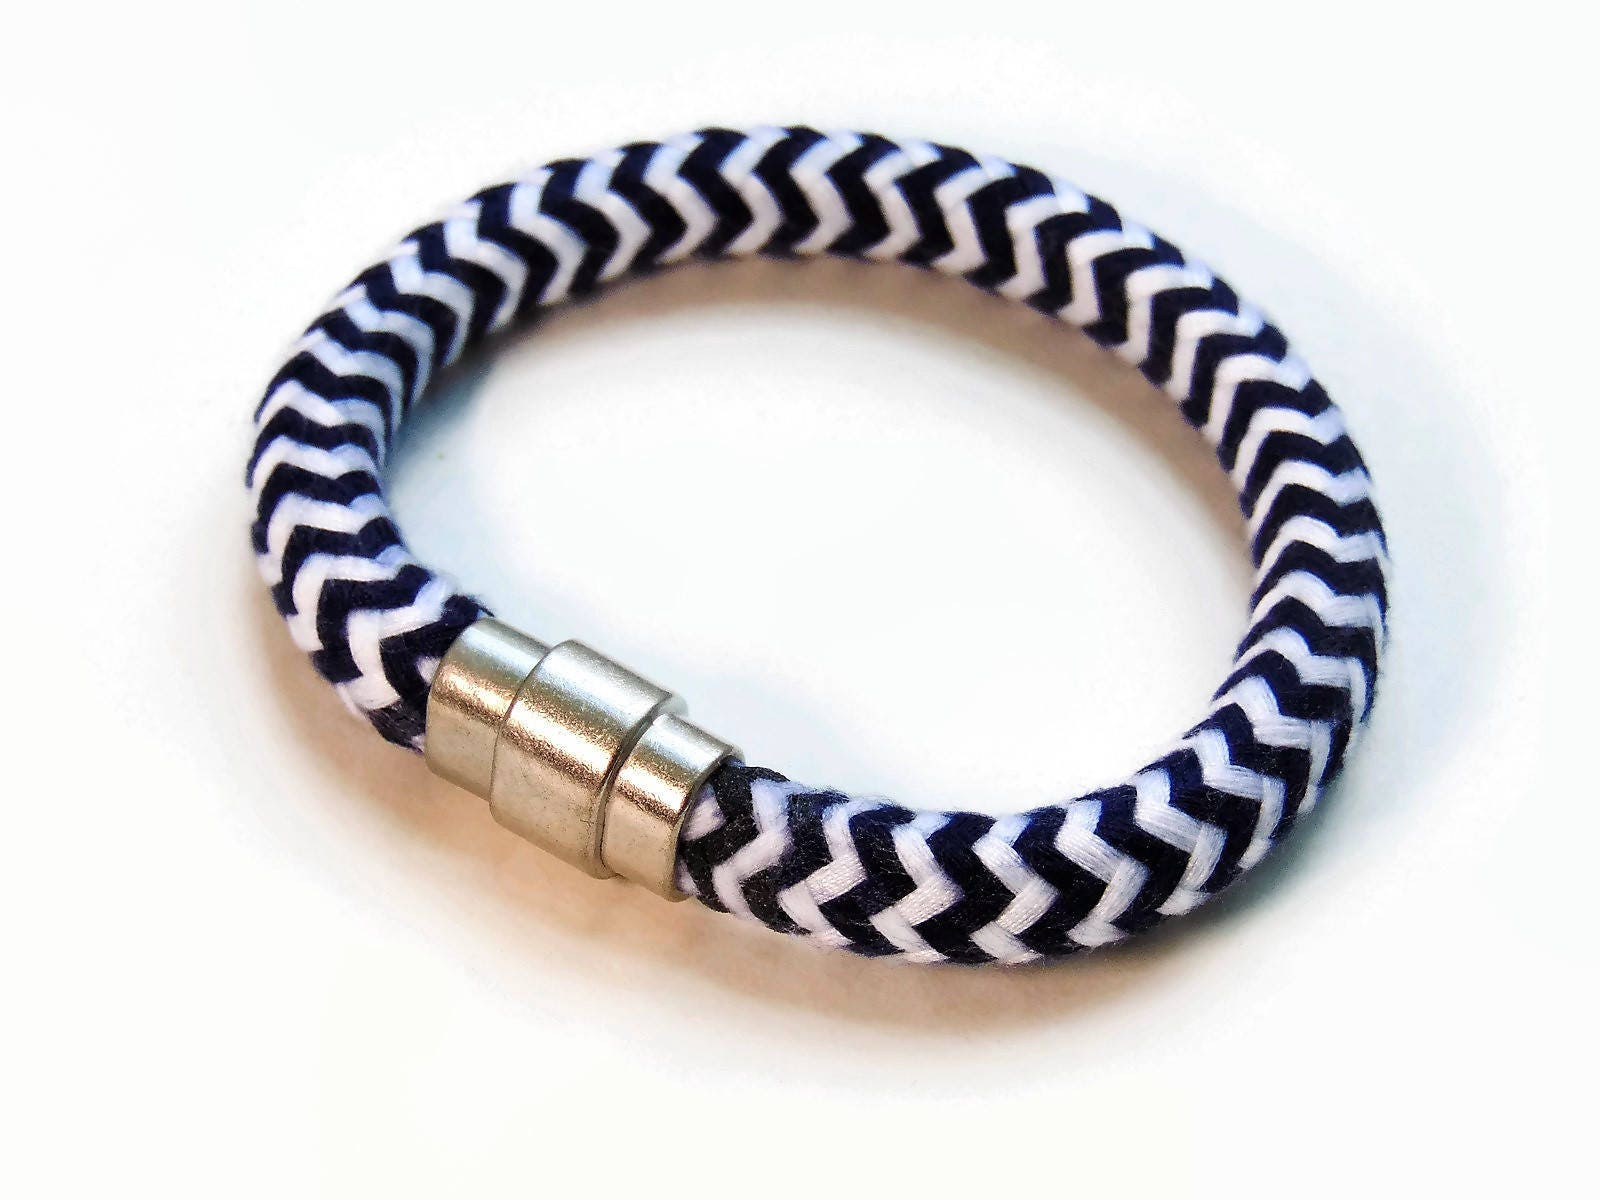 esx nautical bracelet sailormadeusa products rope contender single panel